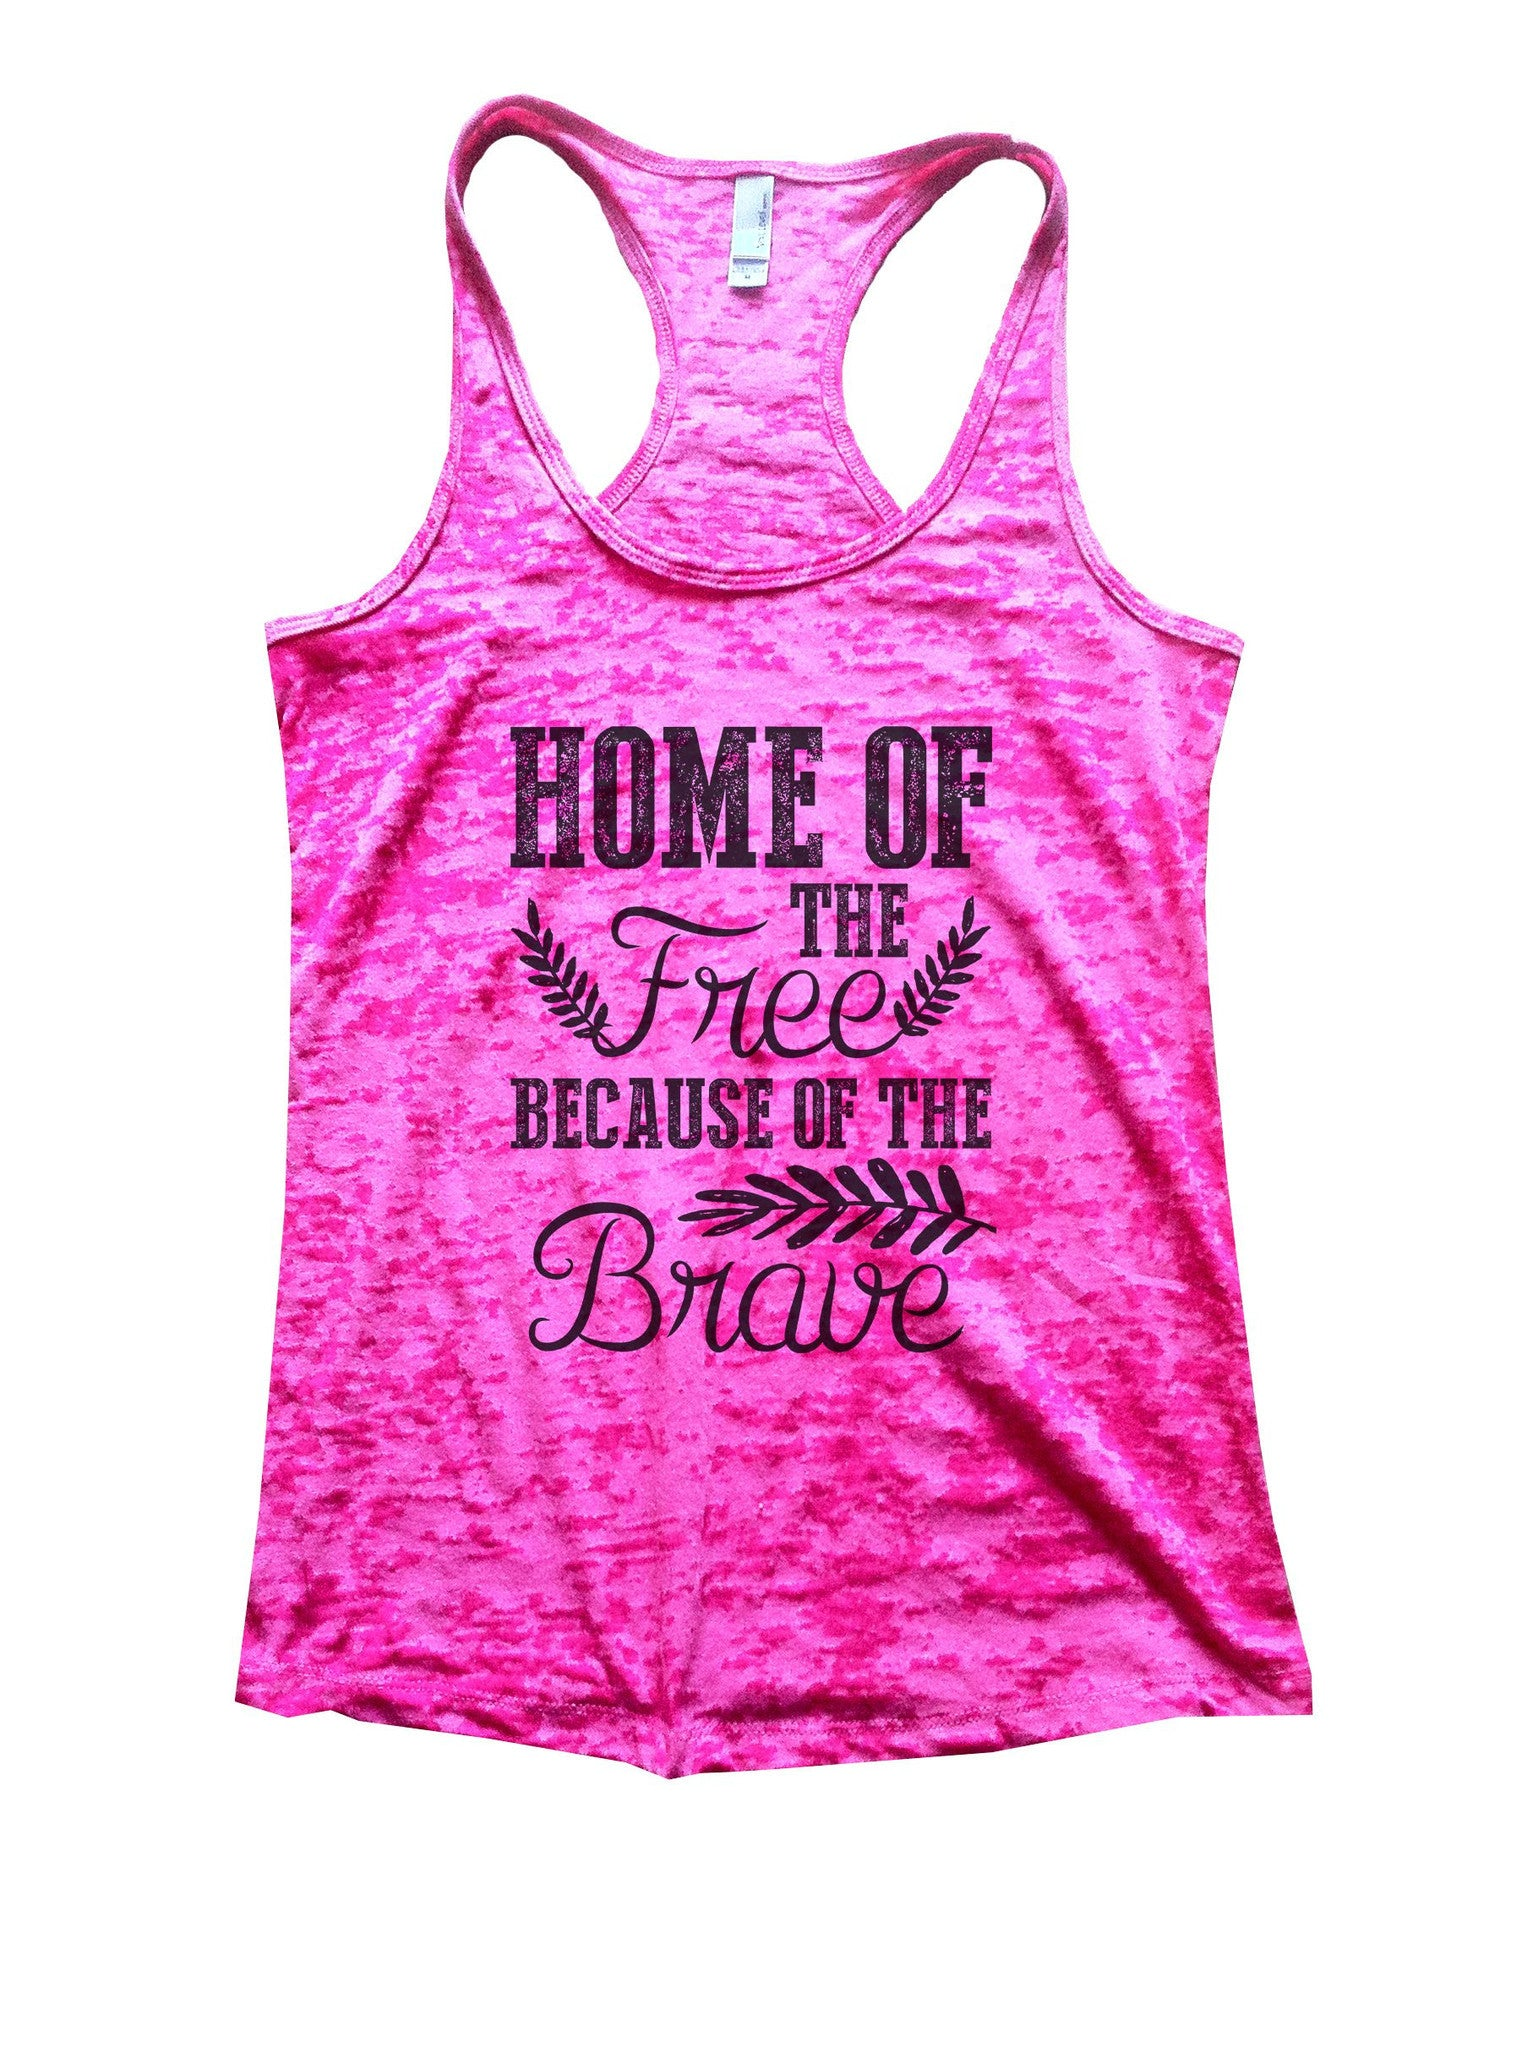 Home Of The Free Because Of The Brave Burnout Tank Top By BurnoutTankTops.com - 978 - Funny Shirts Tank Tops Burnouts and Triblends  - 5